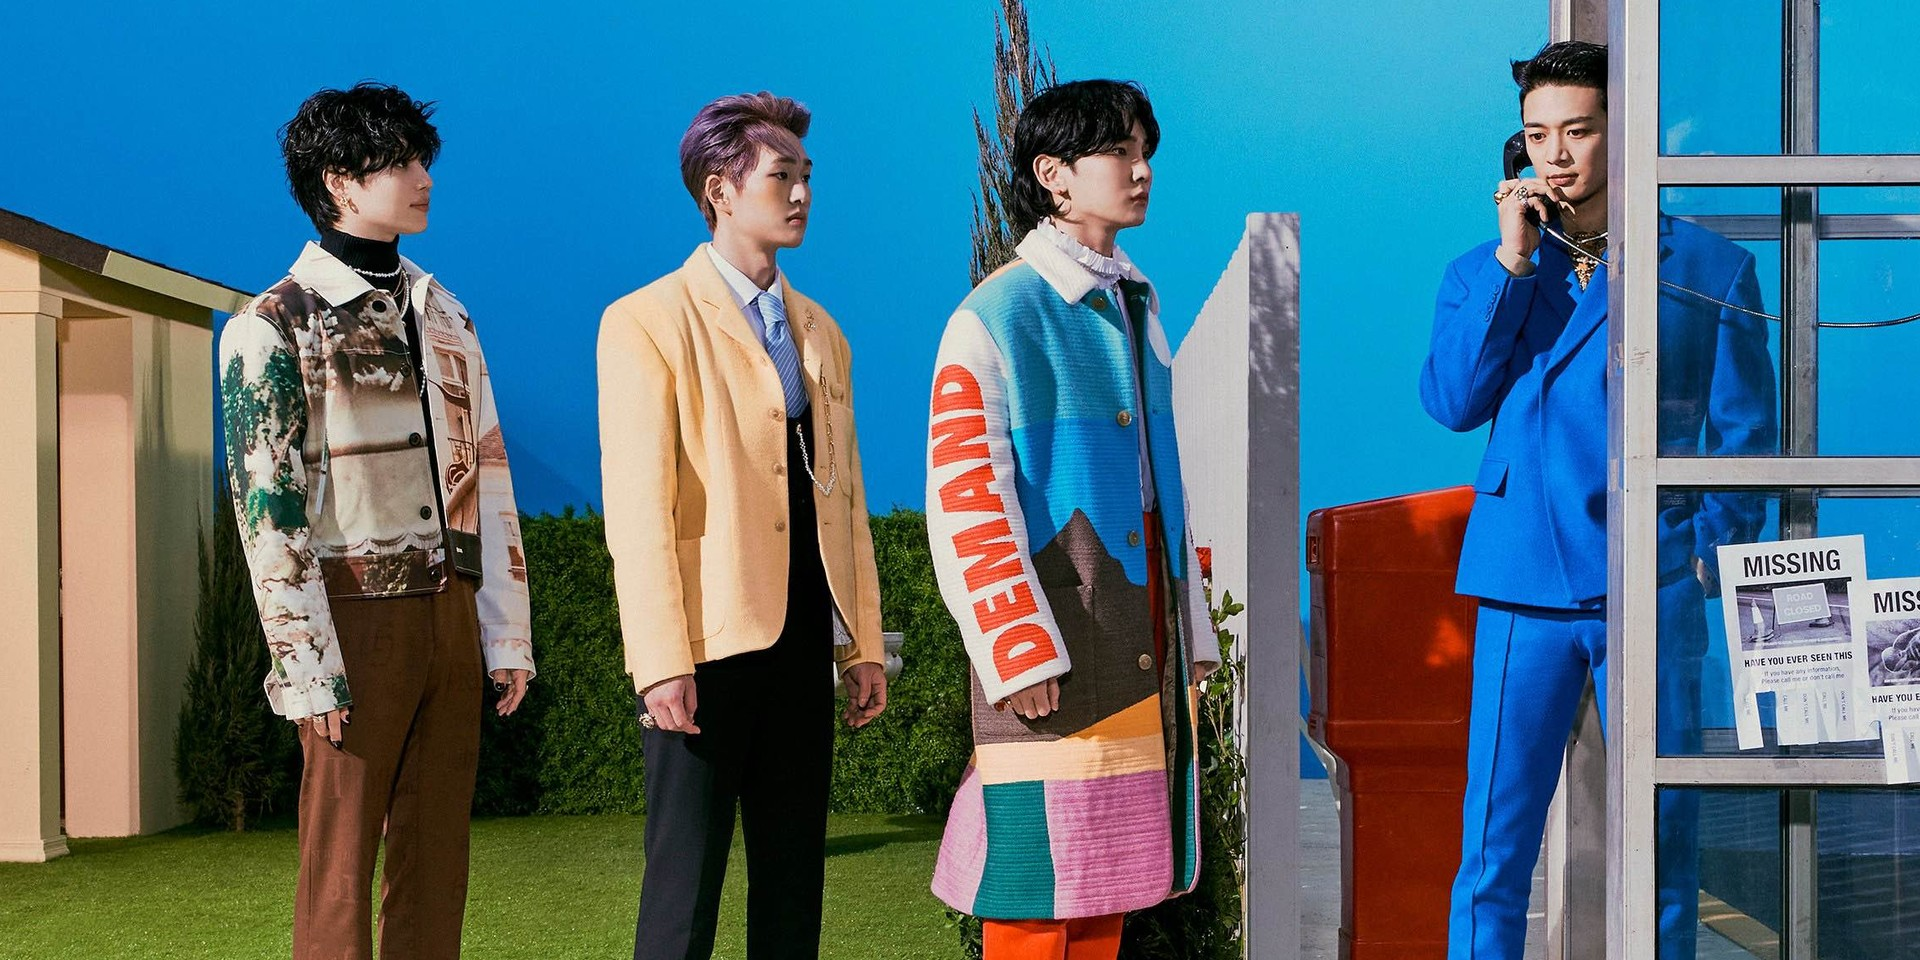 SHINee to release repackaged seventh album 'Atlantis' in April